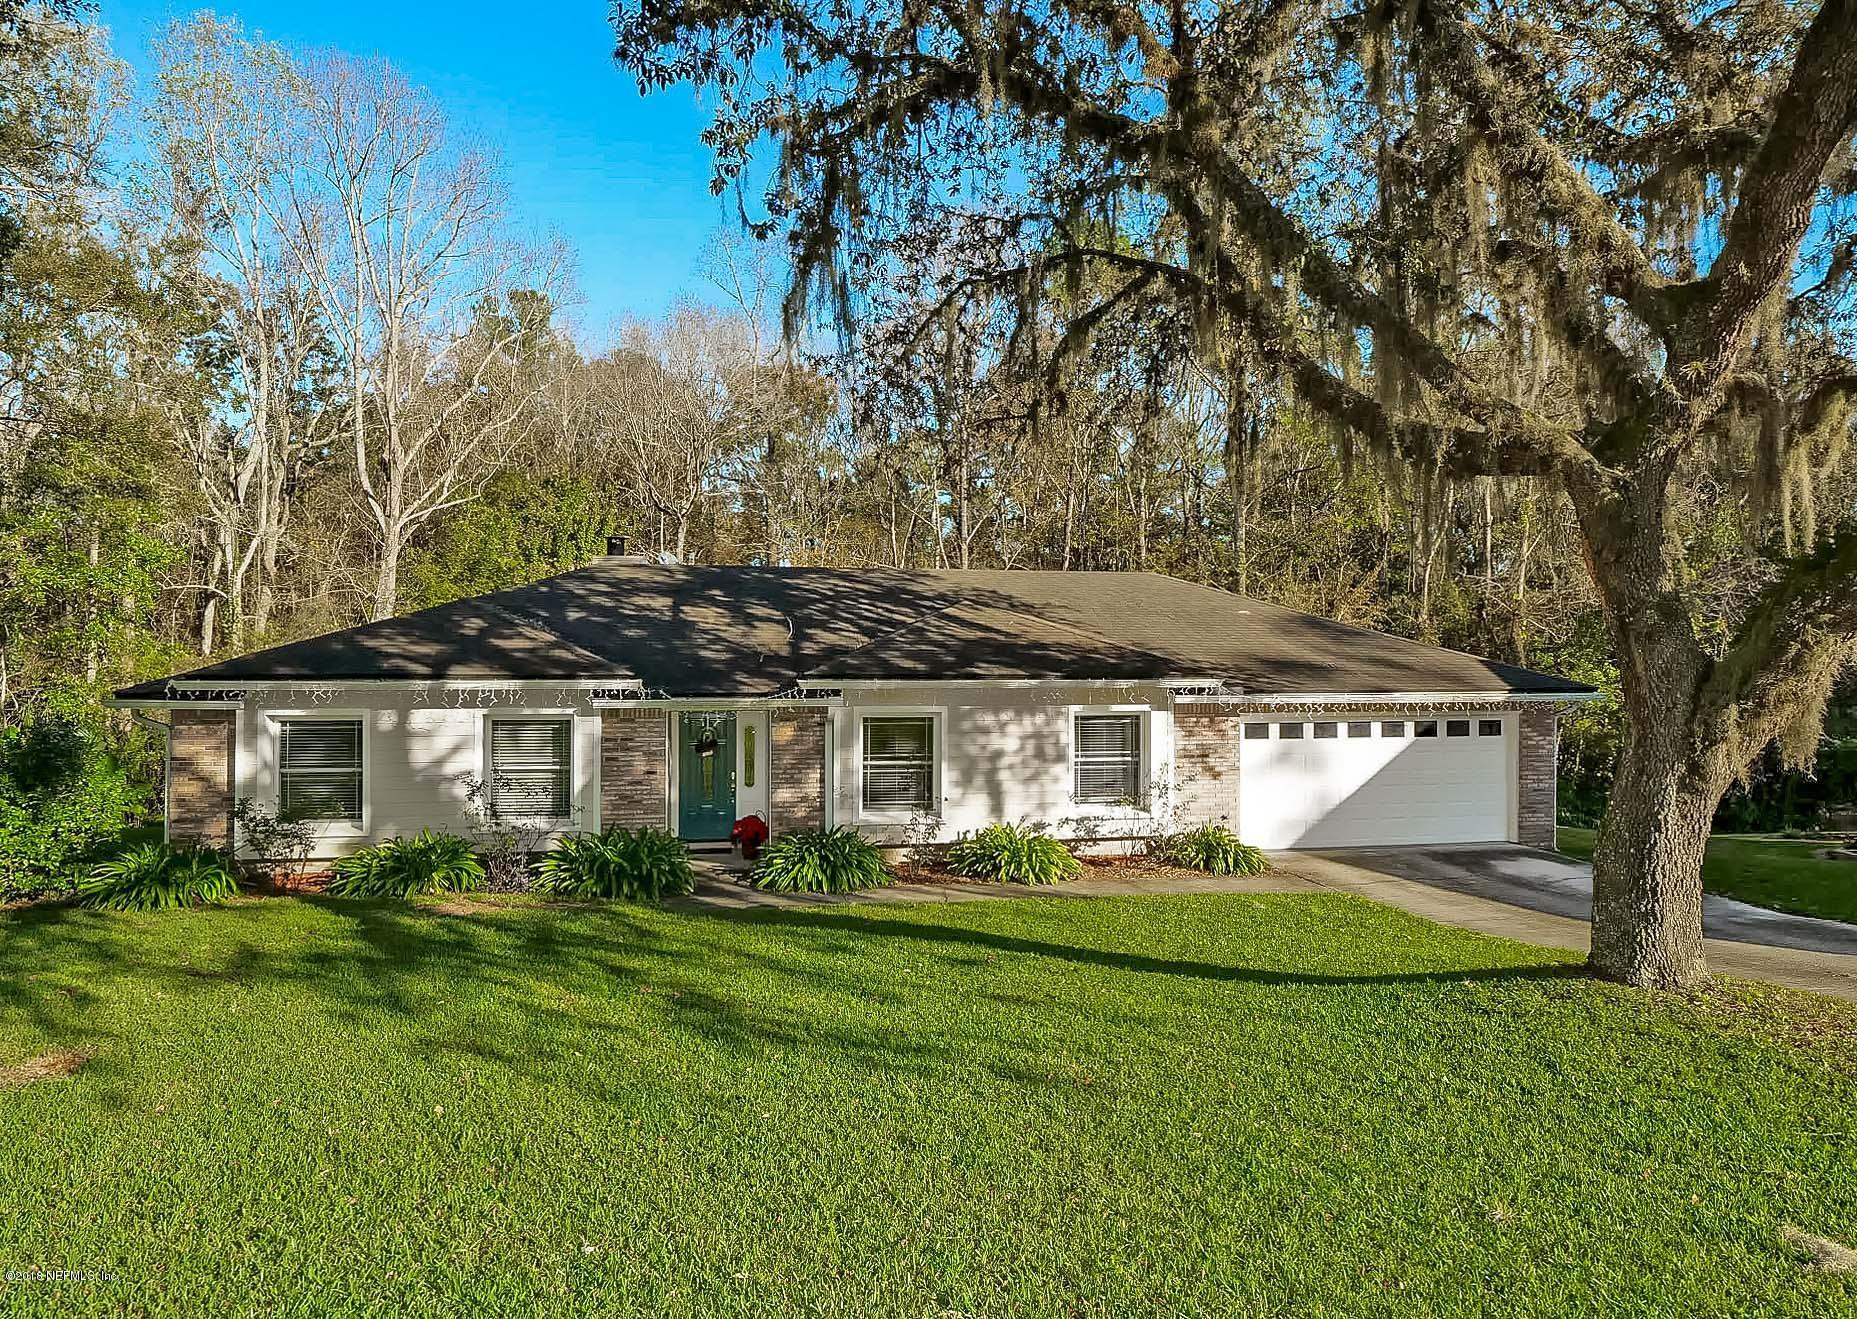 4440 MORNING DOVE, JACKSONVILLE, FLORIDA 32258, 4 Bedrooms Bedrooms, ,2 BathroomsBathrooms,Residential - single family,For sale,MORNING DOVE,970525